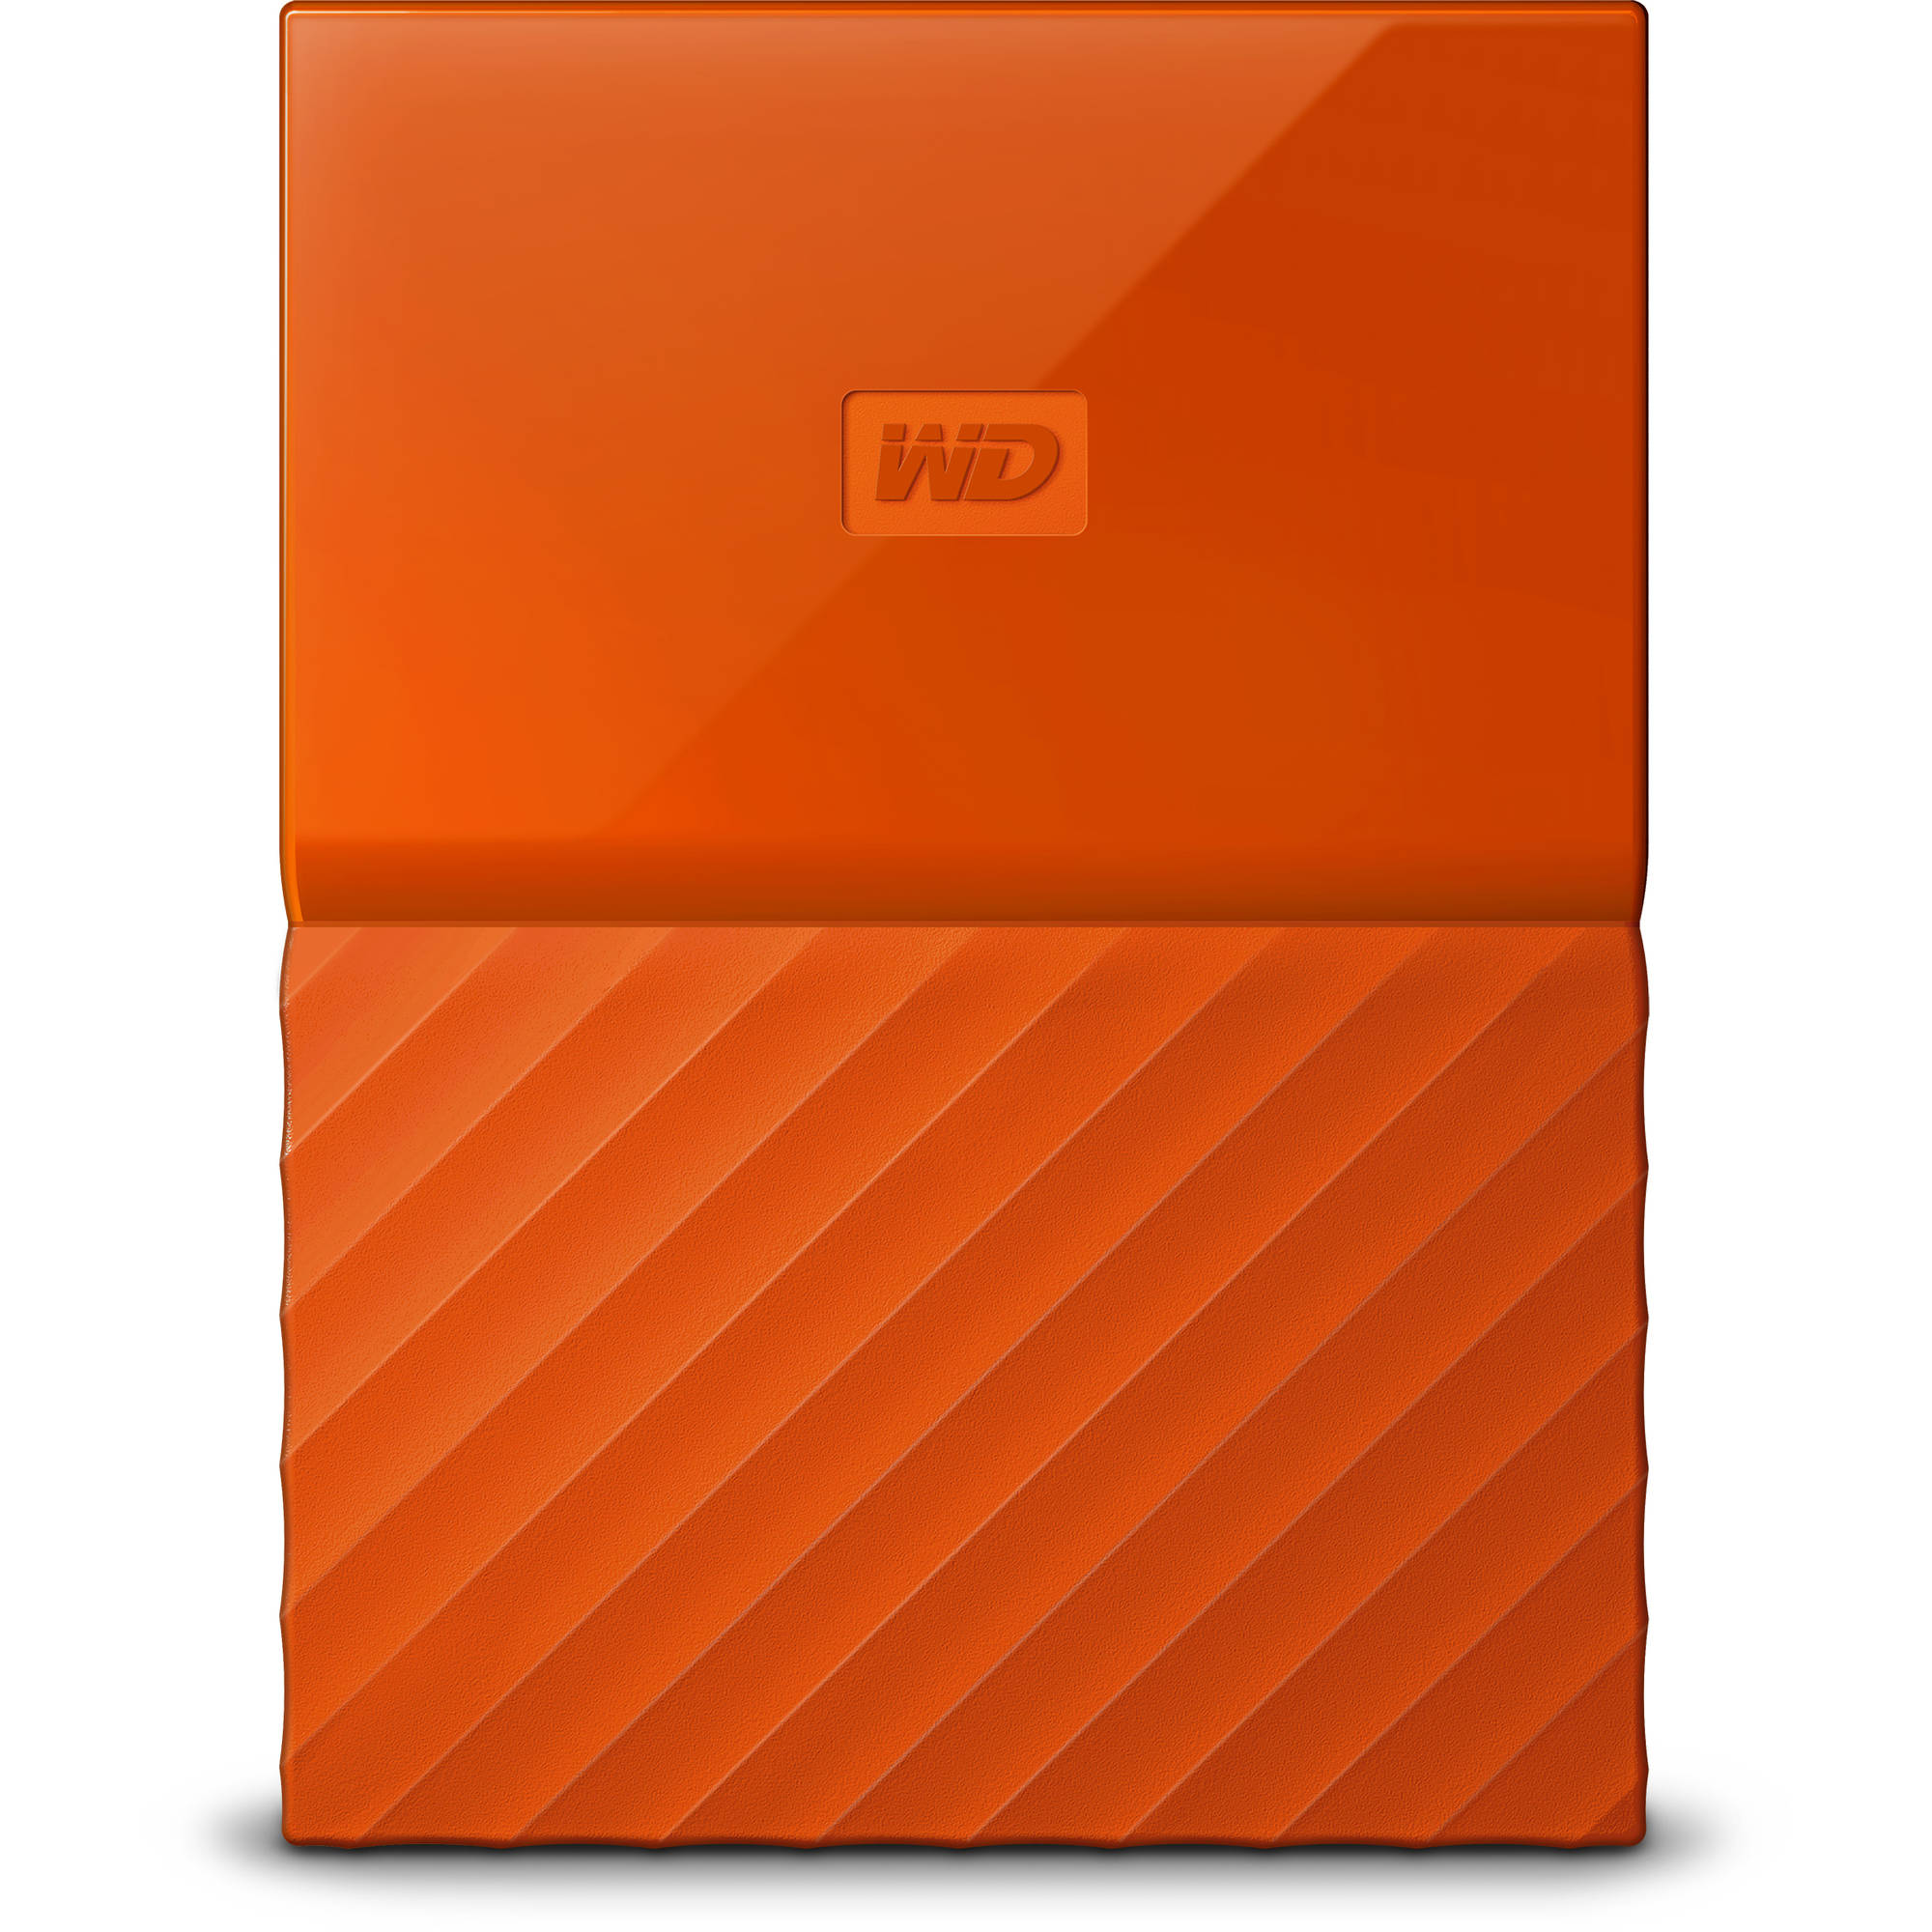 Western Digital My Passport 4TB Portable External Hard Drive, Orange